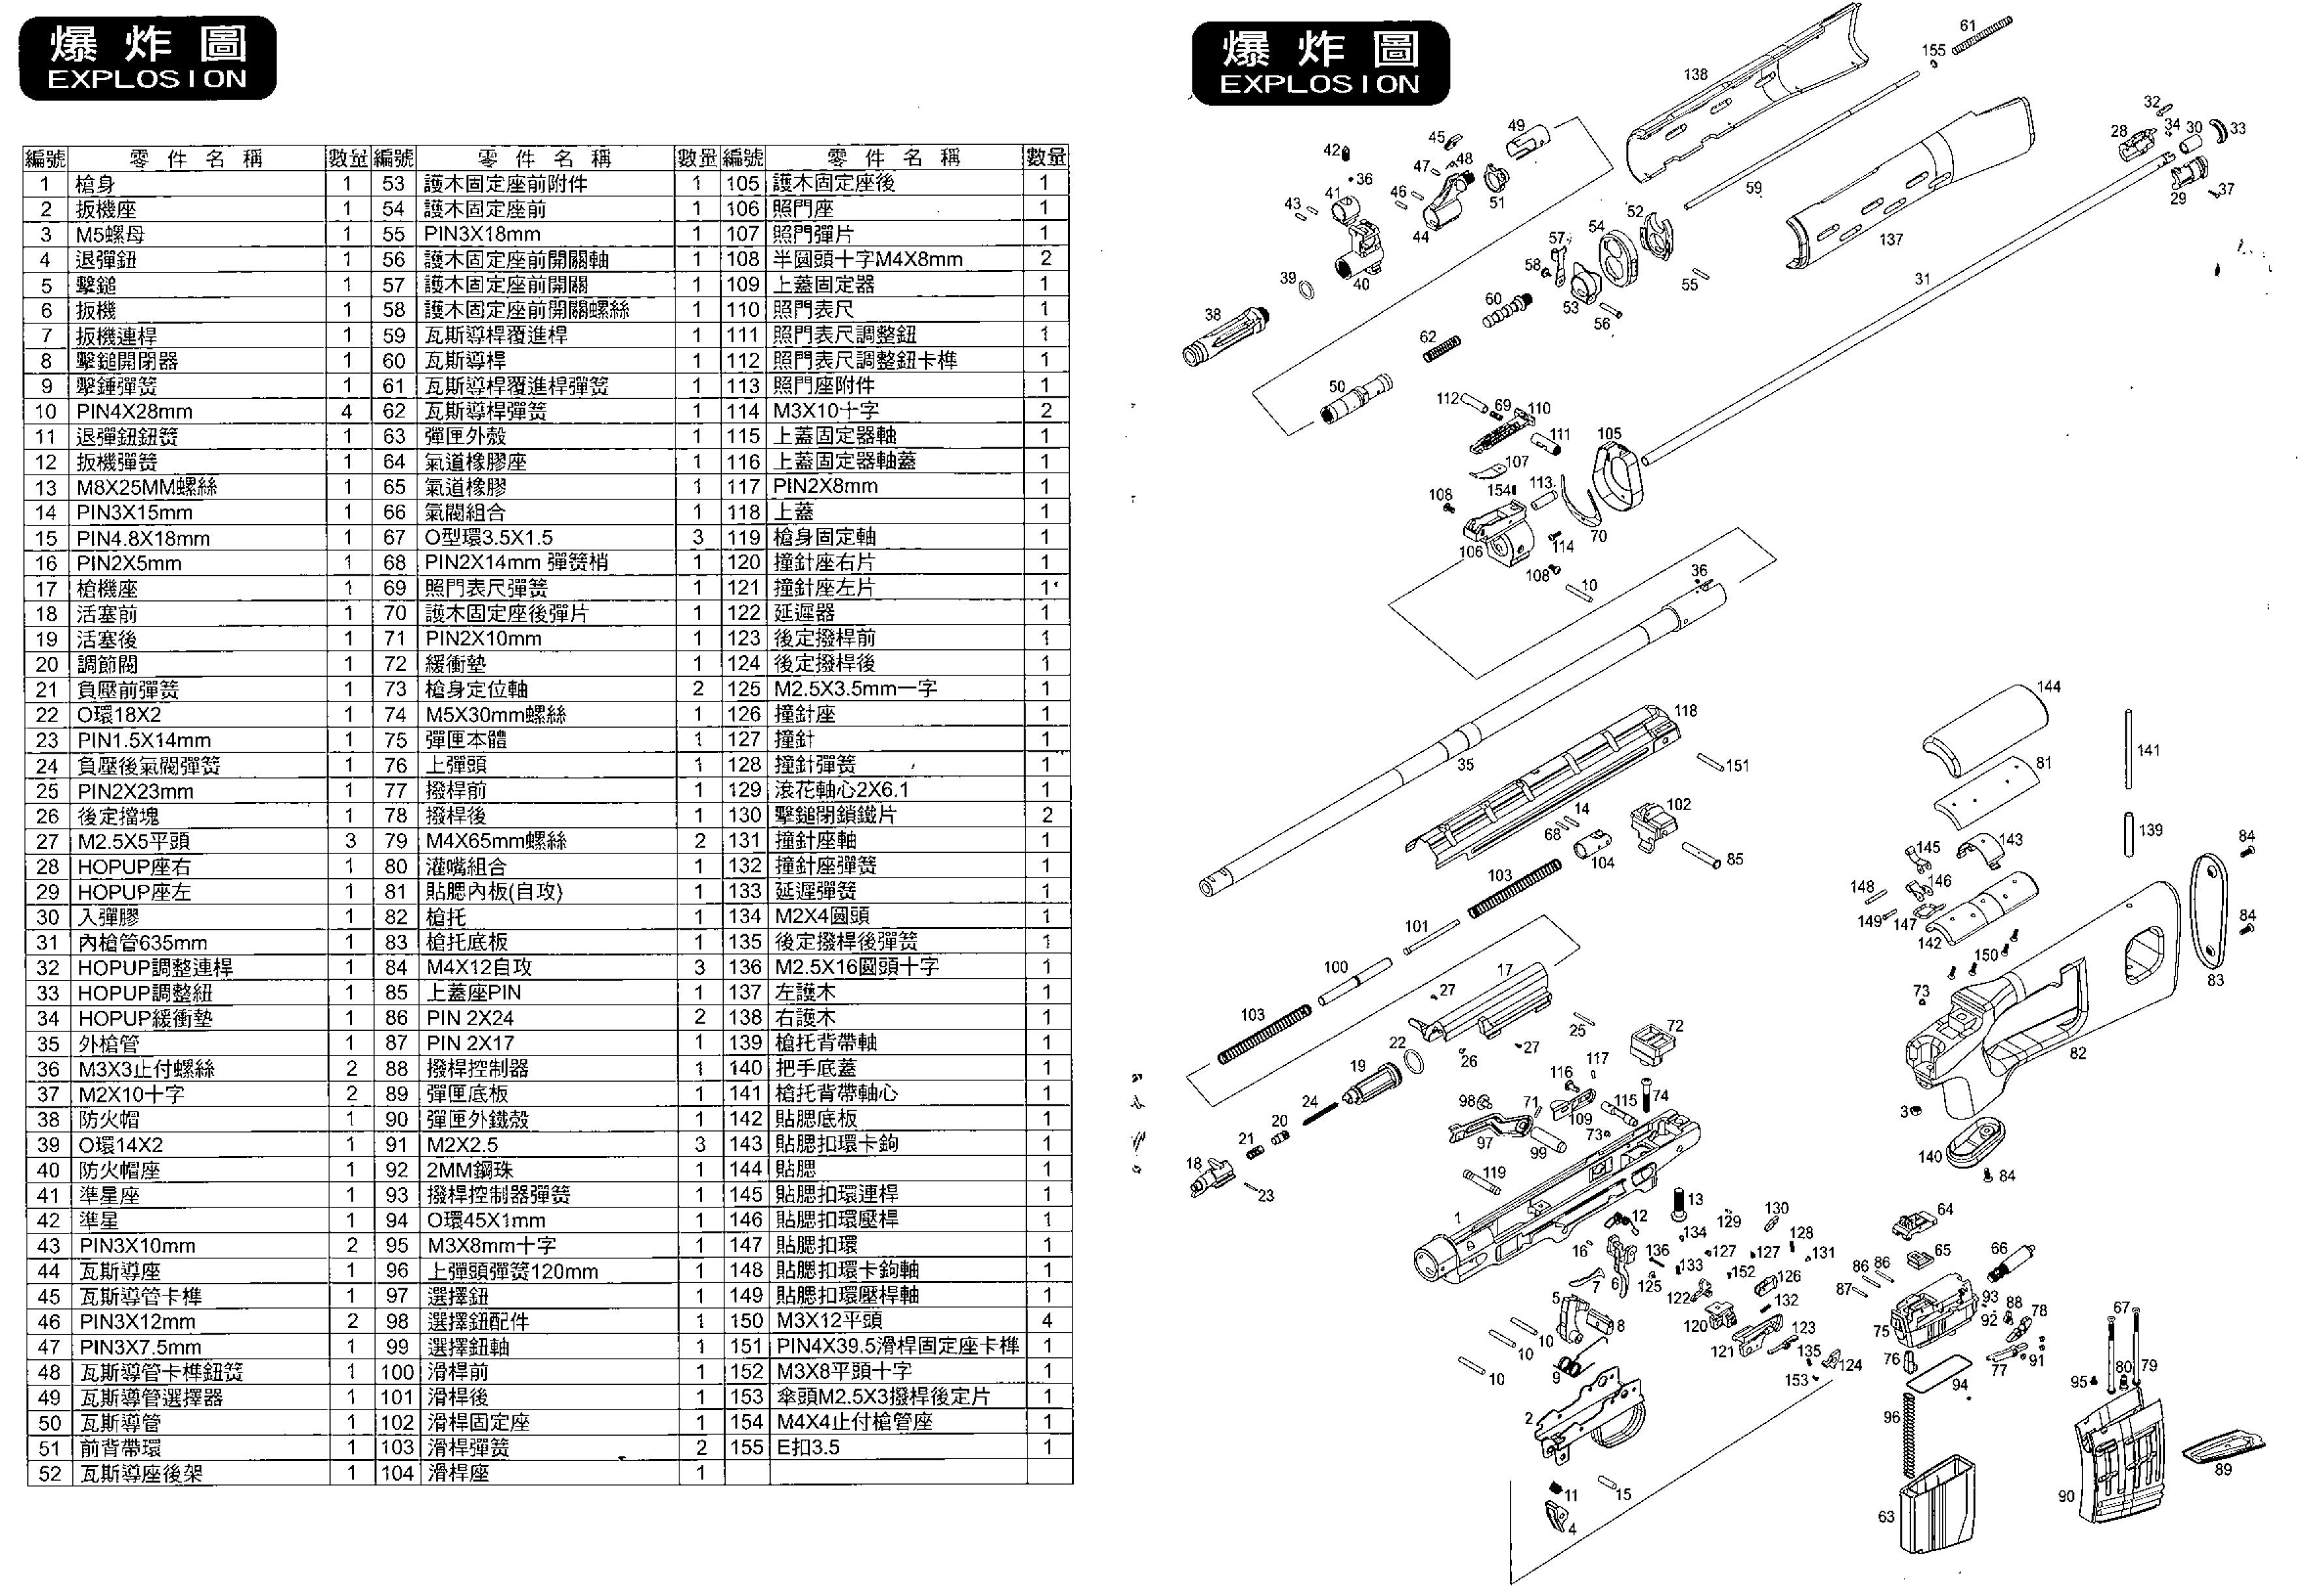 m14 parts diagram chrysler 2 4 belt free download manual for we gbb svd instruction user page